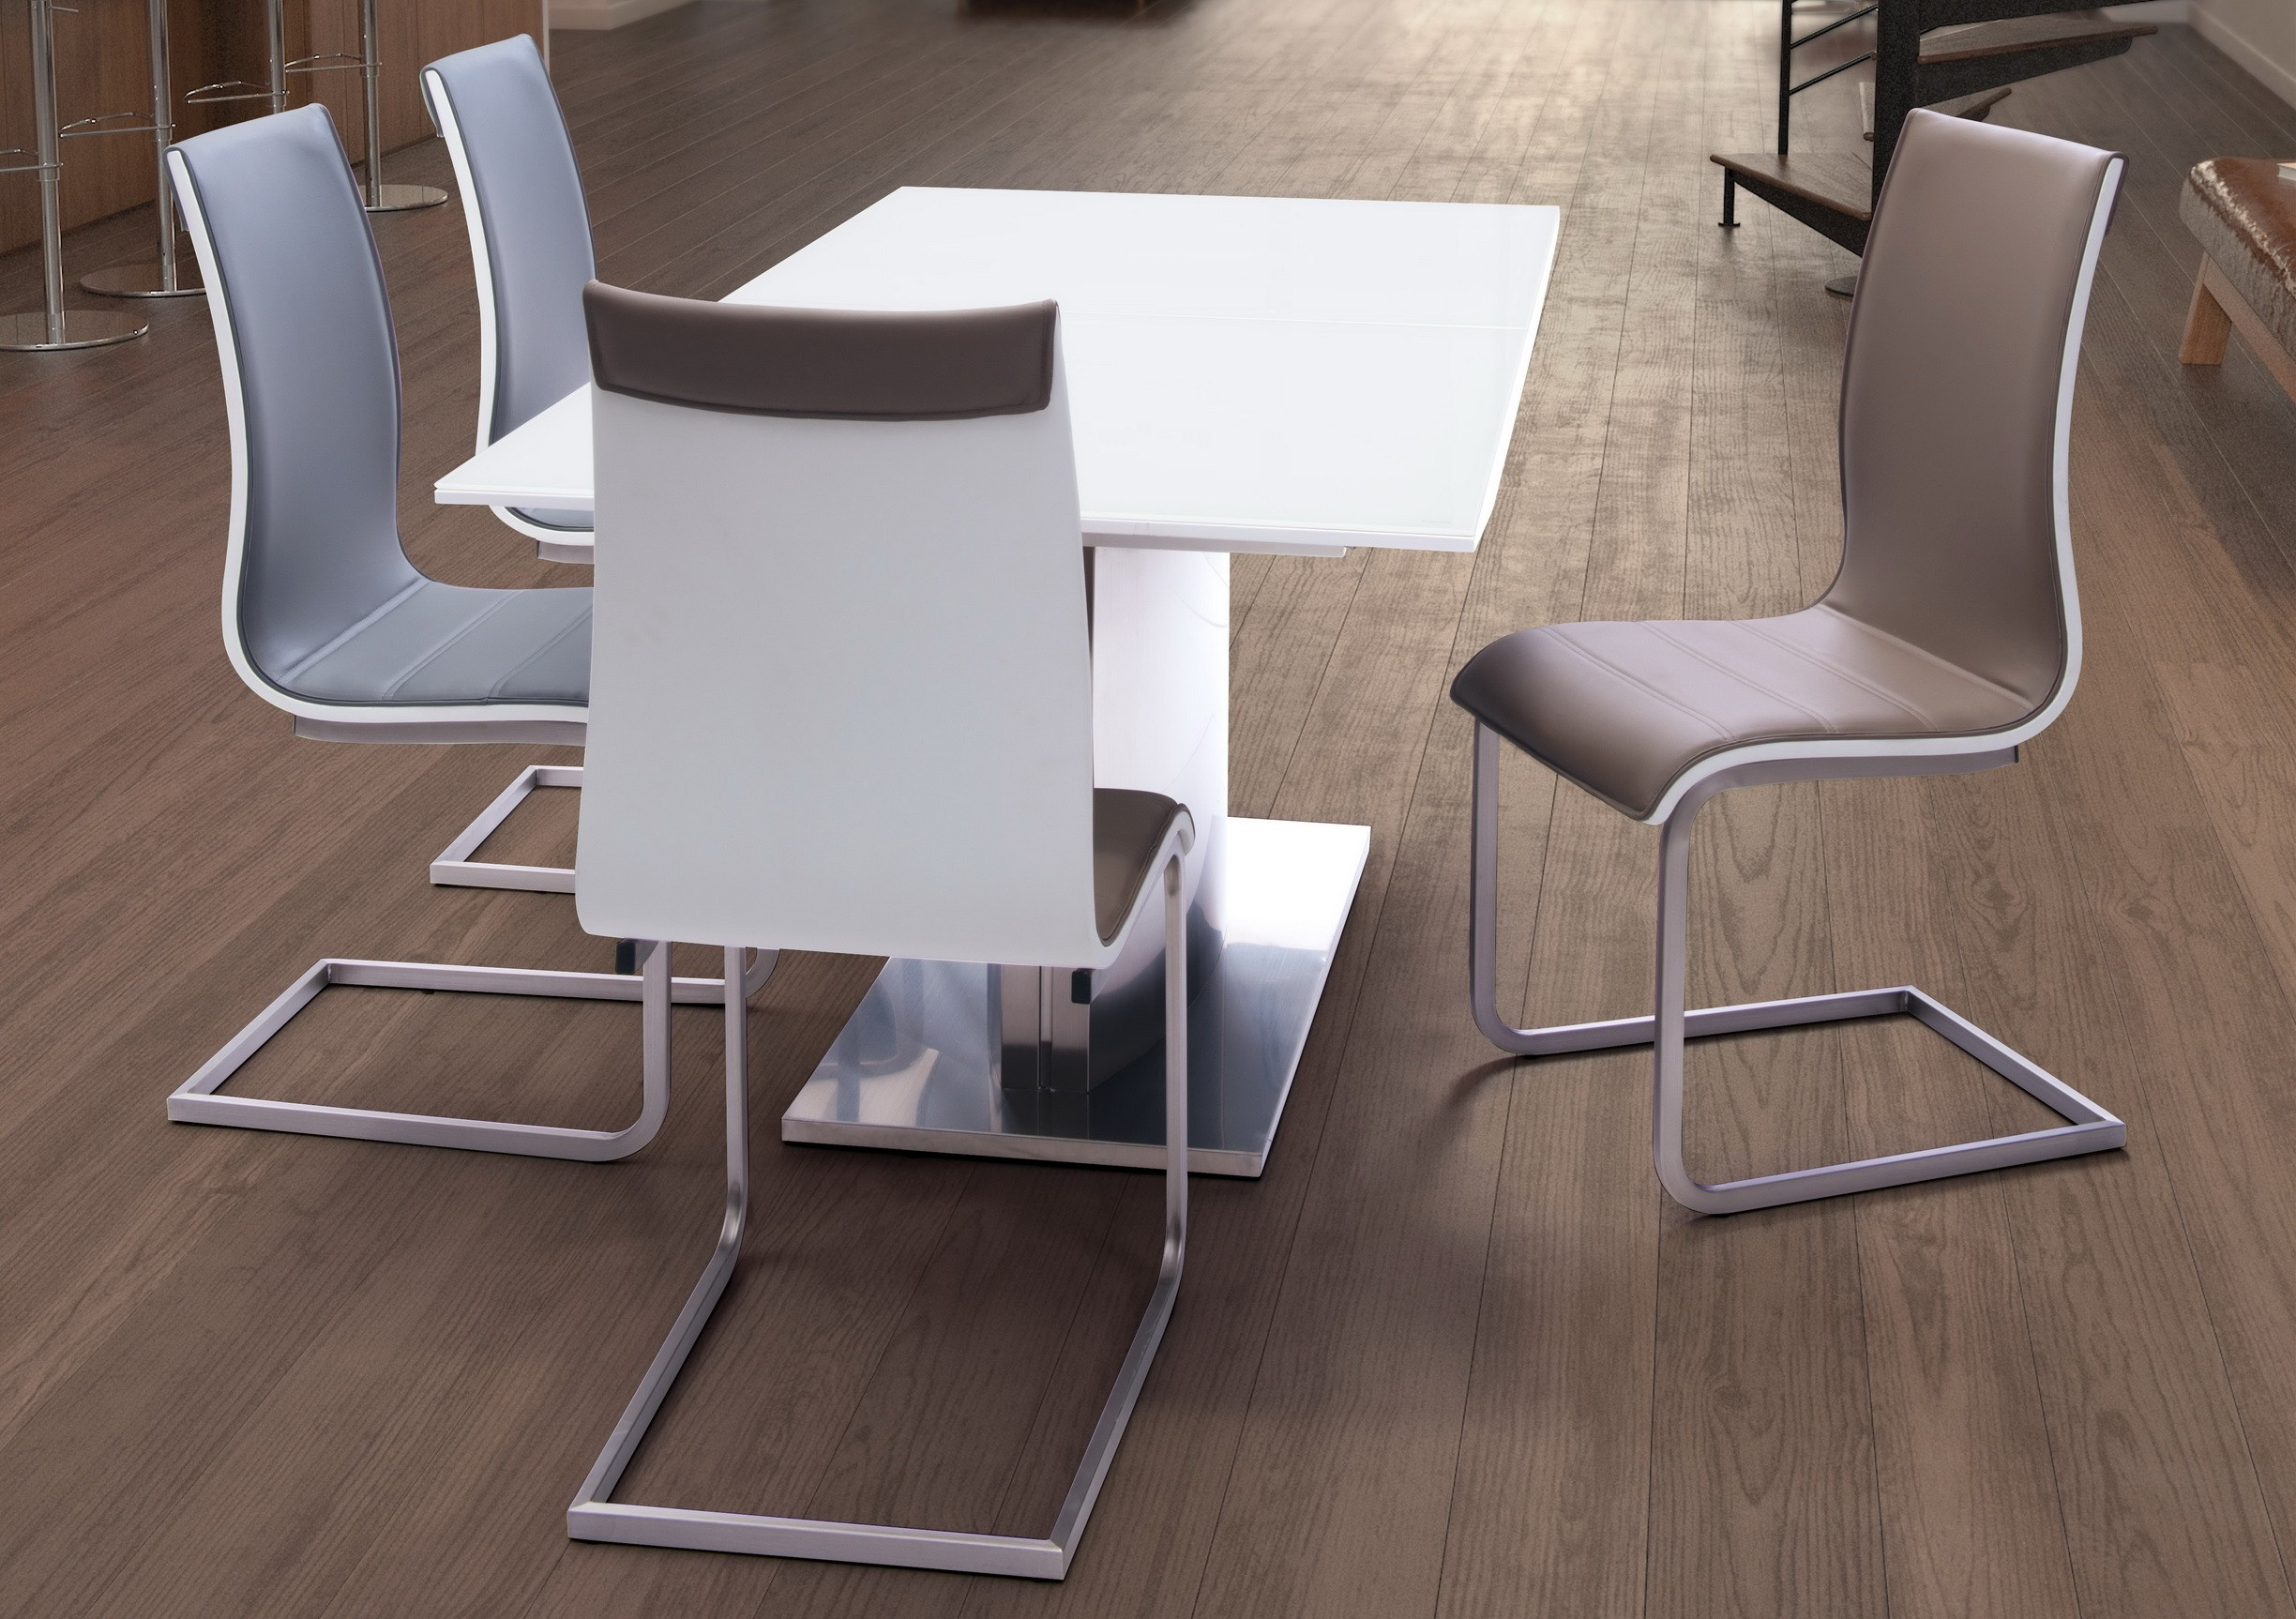 Trembles Dining Chair By Zuo Mod Zuo Modern, Zuo, Zuo Mod, Modern Furniture  Zuo Mod, Dining Sets By Zuo Mod, Zuo Mod Dining Table, Zuo Mod Dining, ...